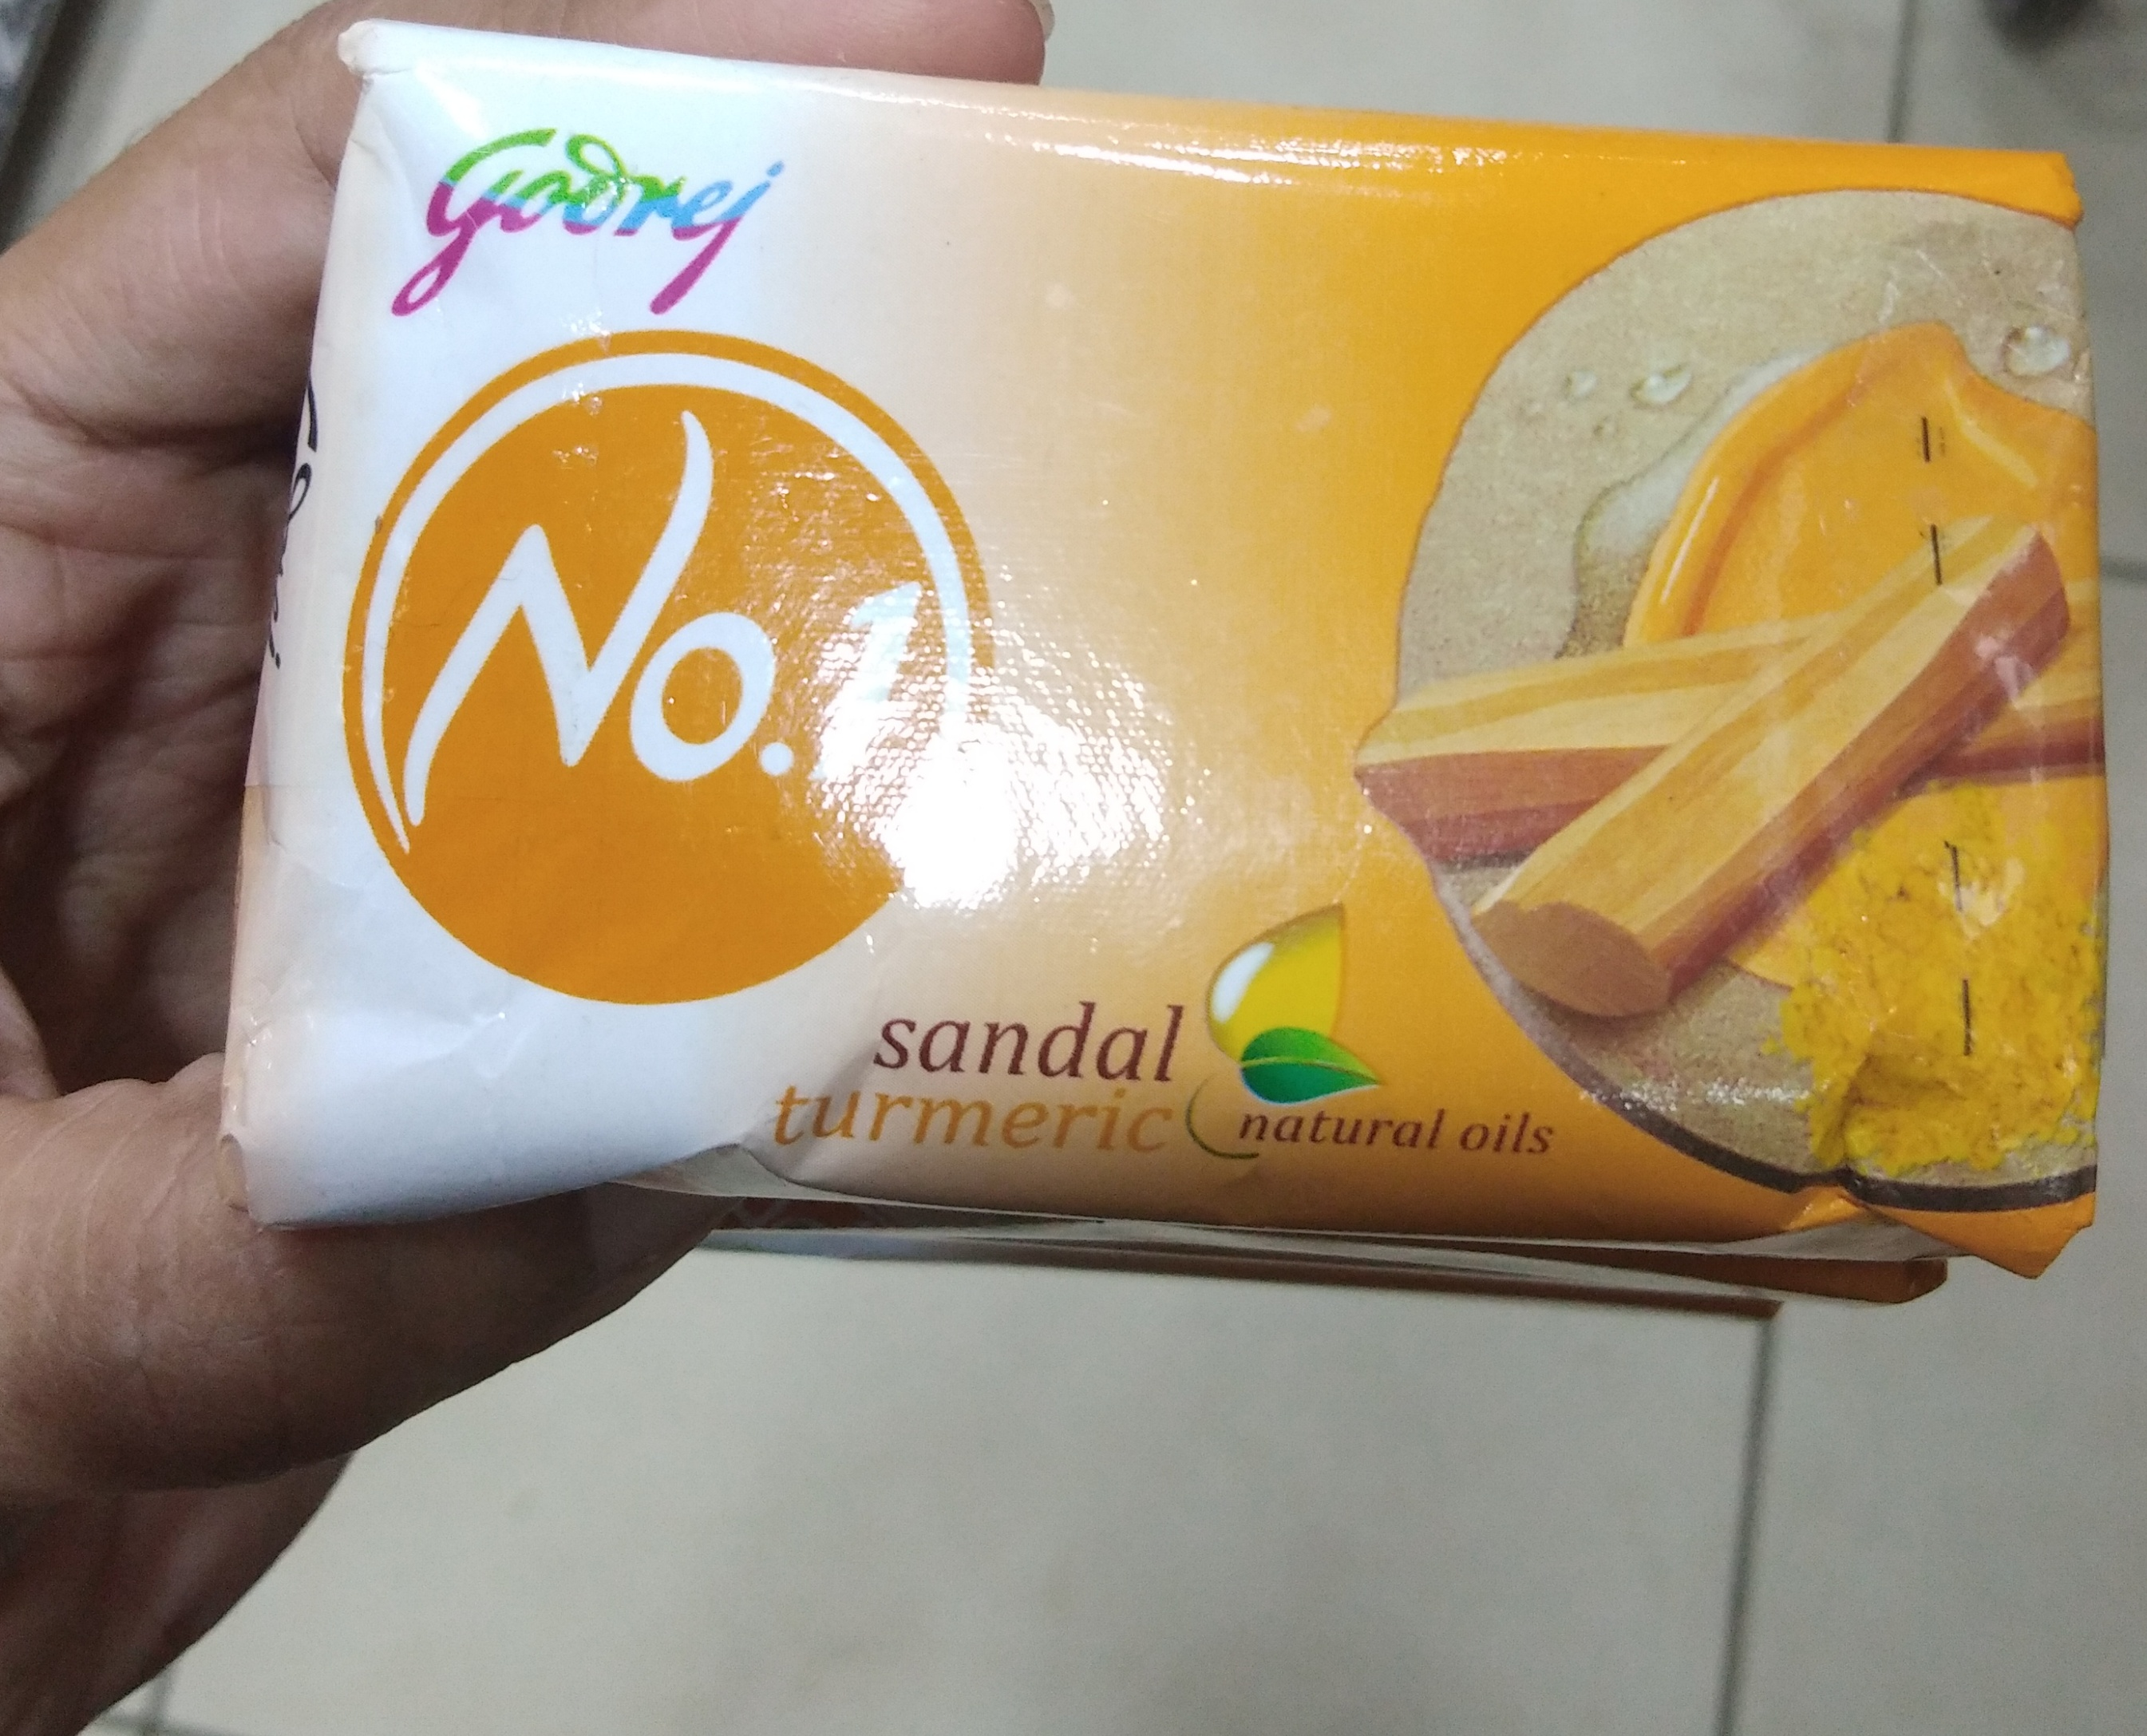 Godrej No 1 Sandal And Turmeric Soap-Not satisfied-By Nasreen-1